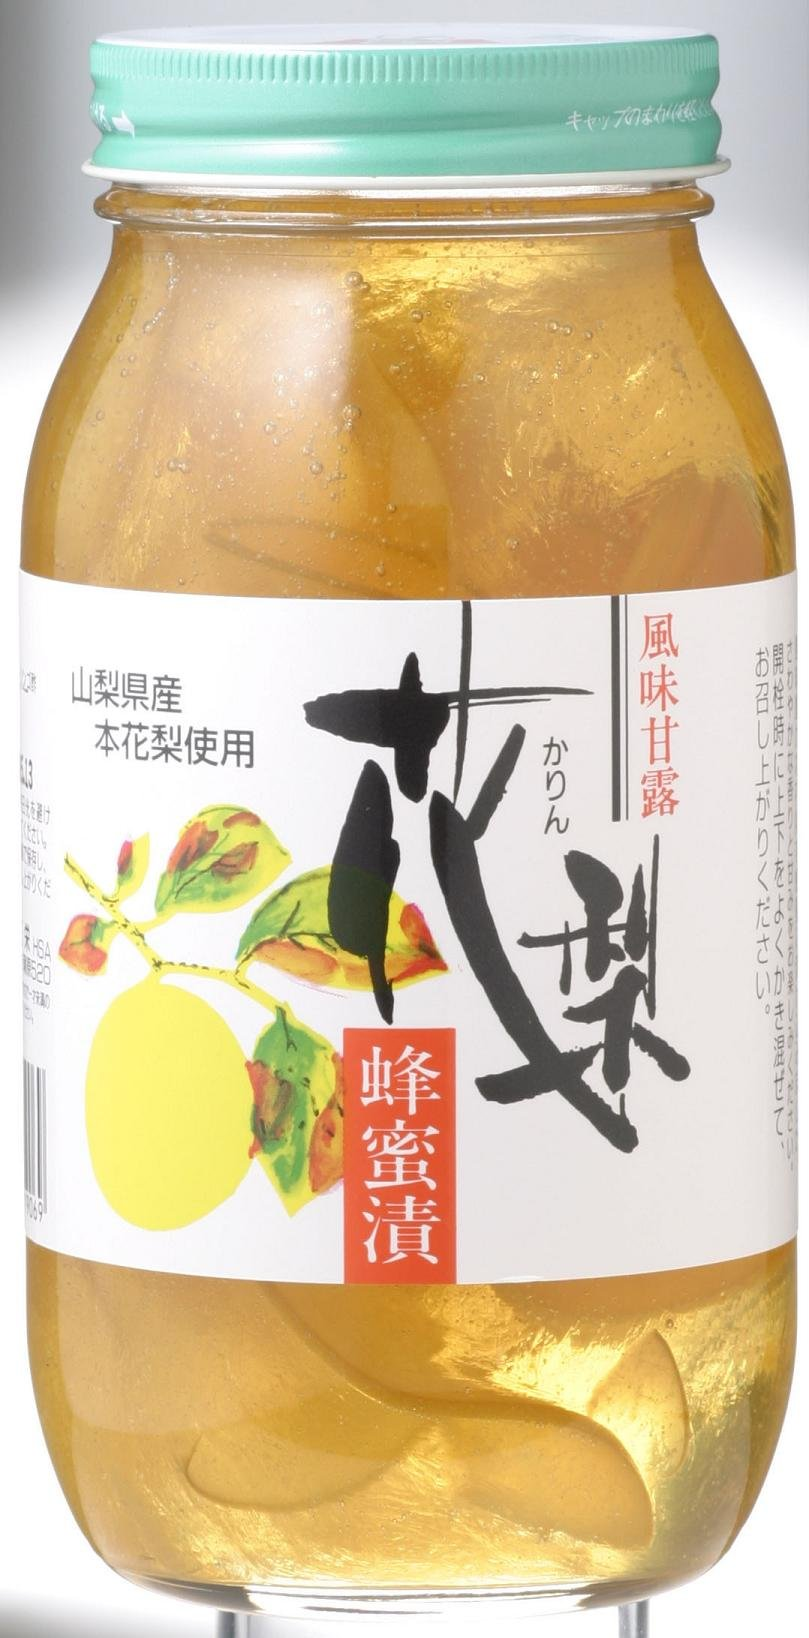 Shoei Chinese Quince Honey 1000g Bottle Products Japan